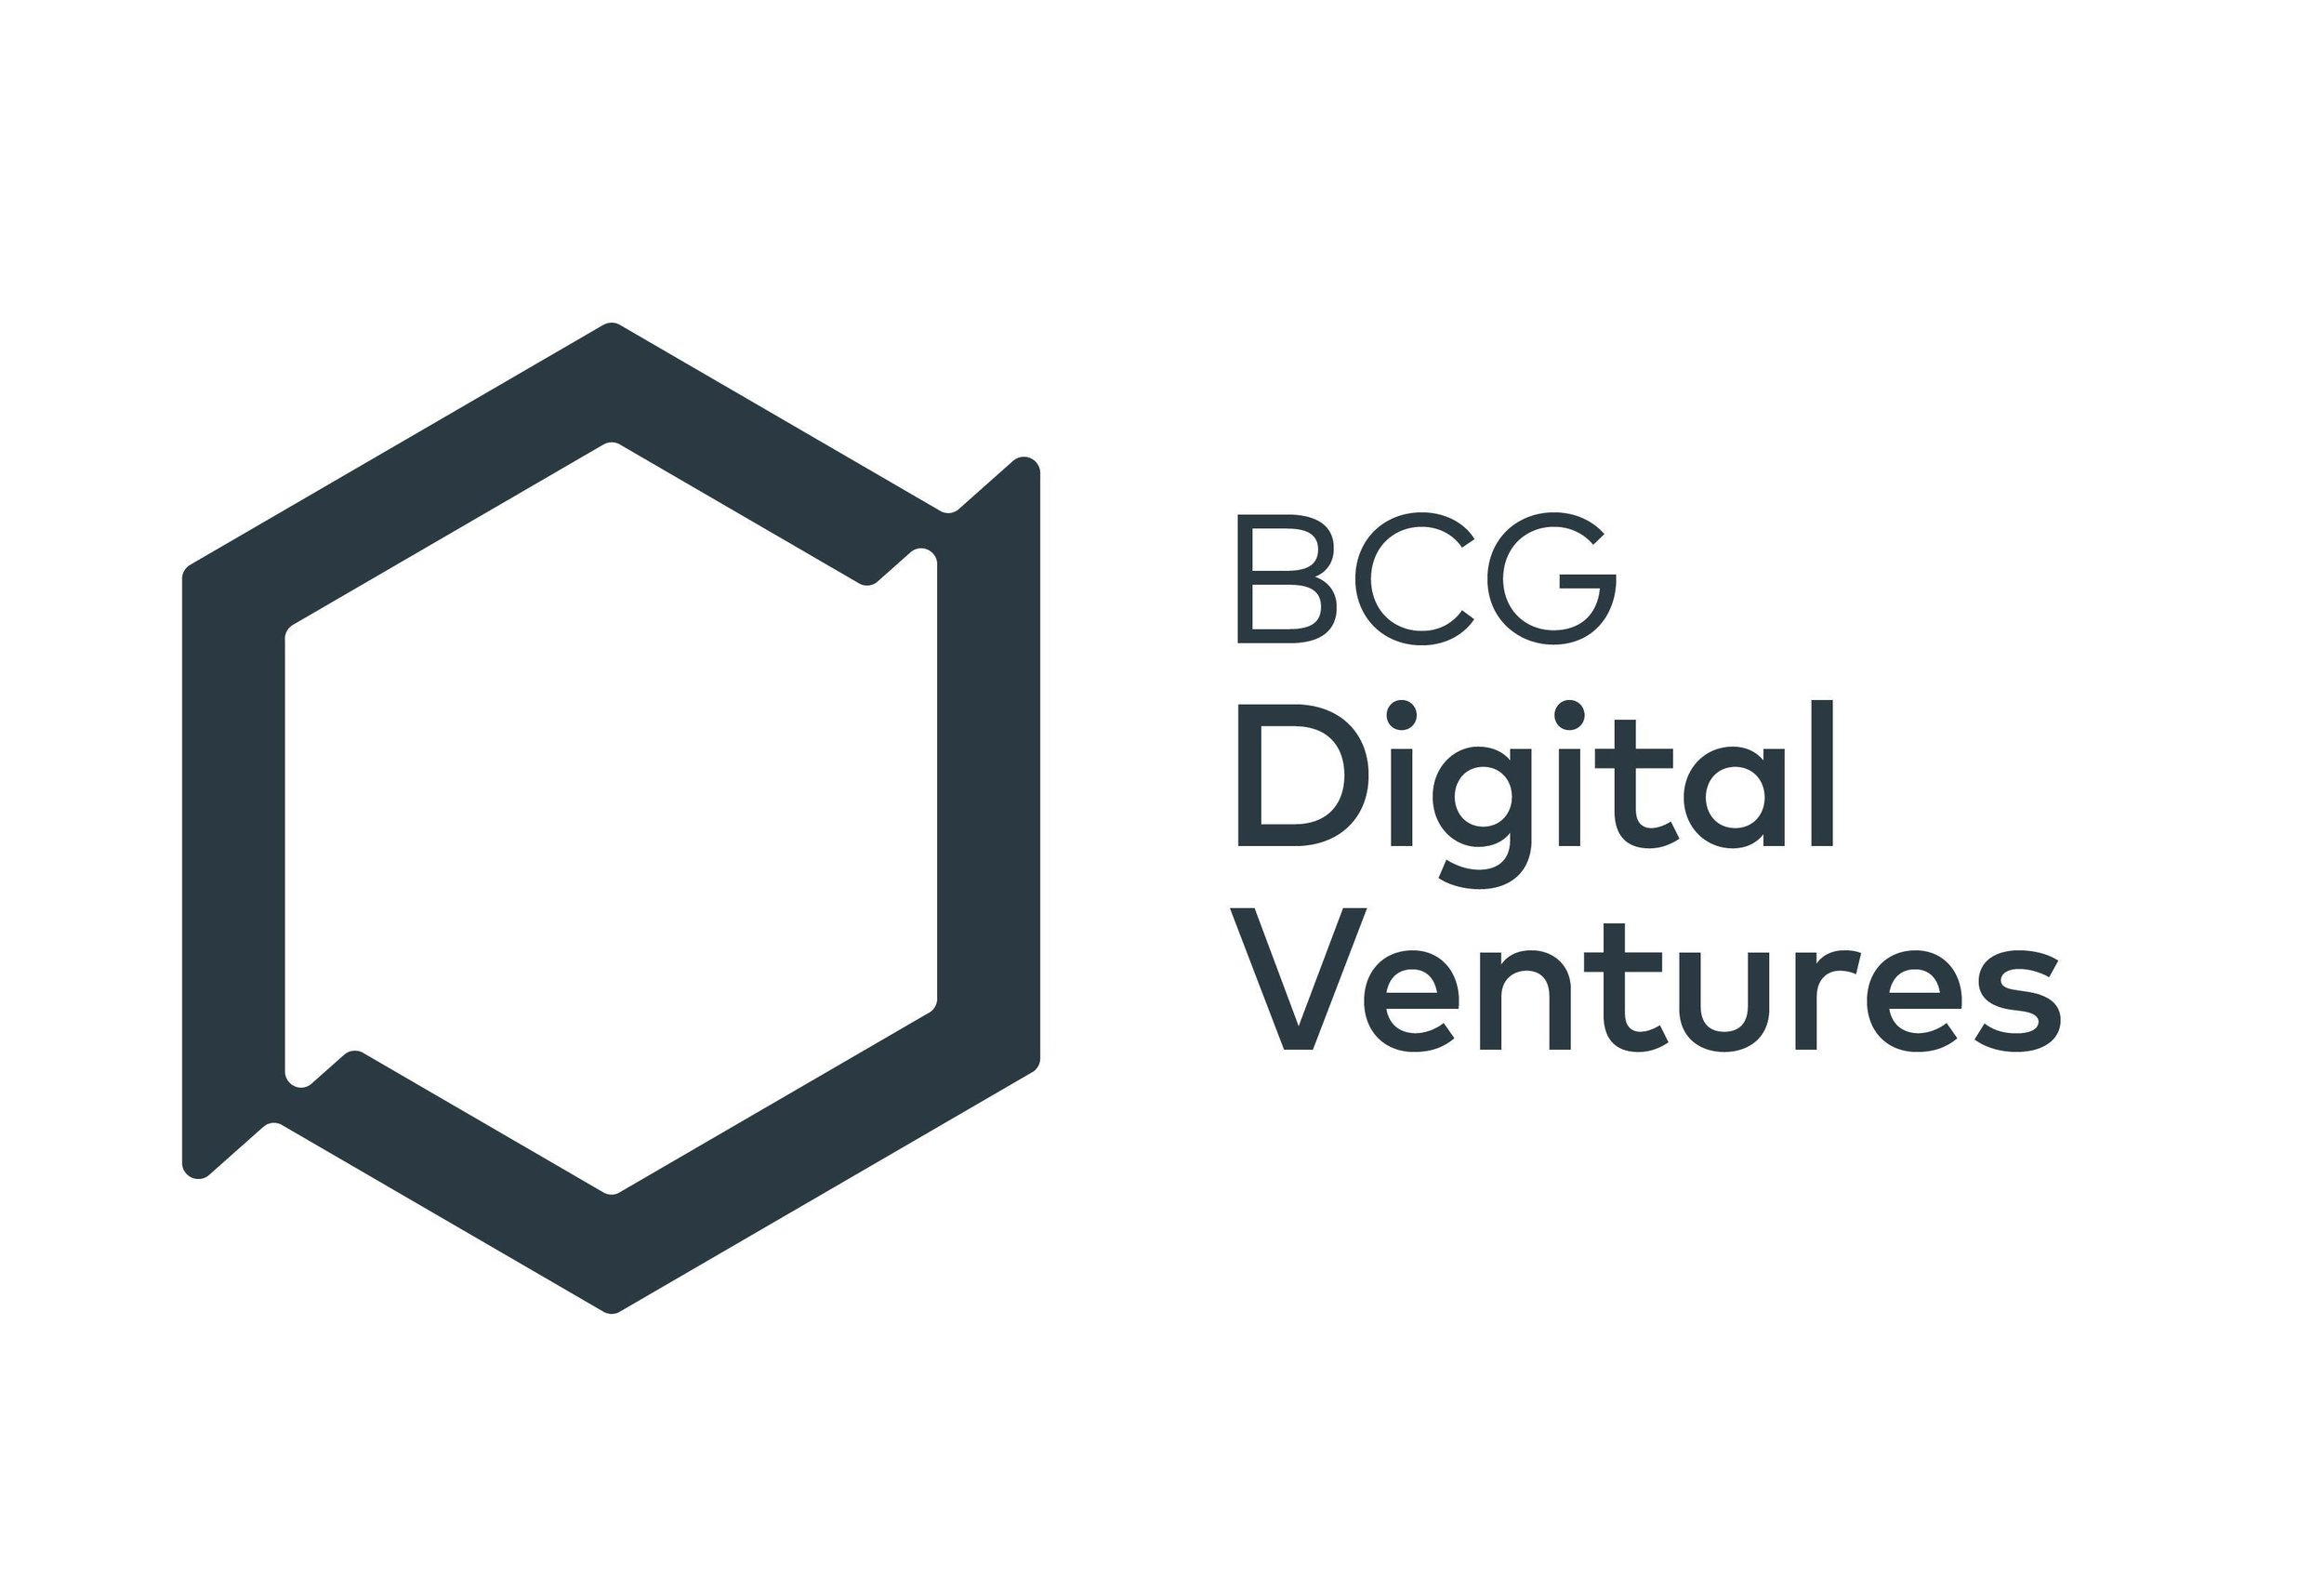 bcg-digital-ventures_owler_20160922_210453_original.jpg